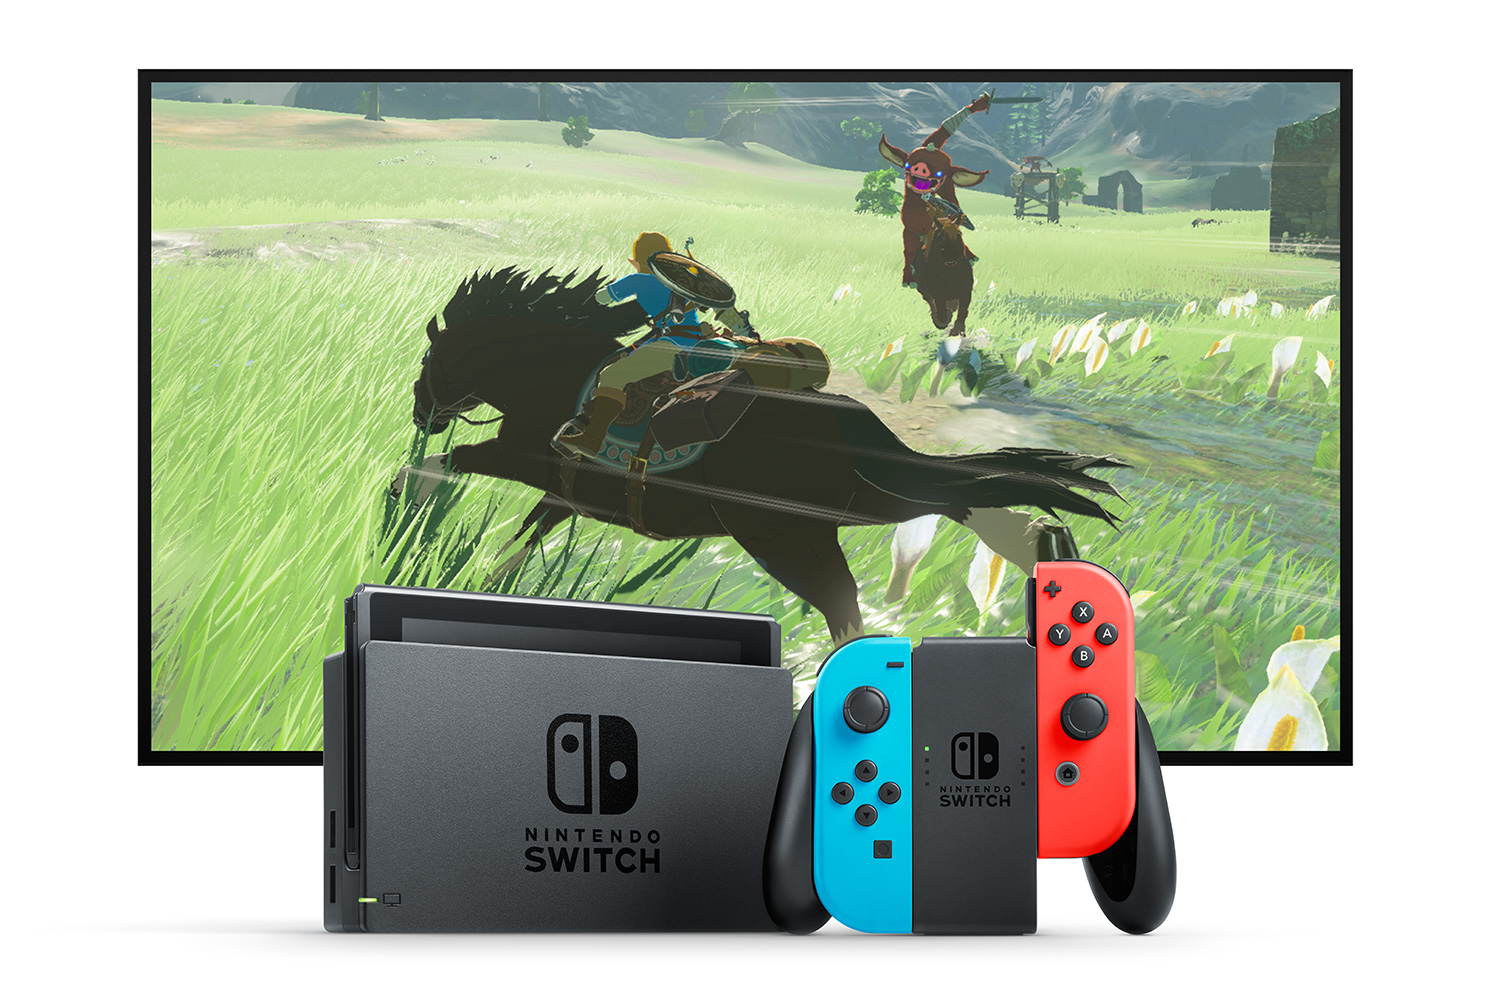 Nintendo switch three play modes news nintendo for Housse zelda nintendo switch